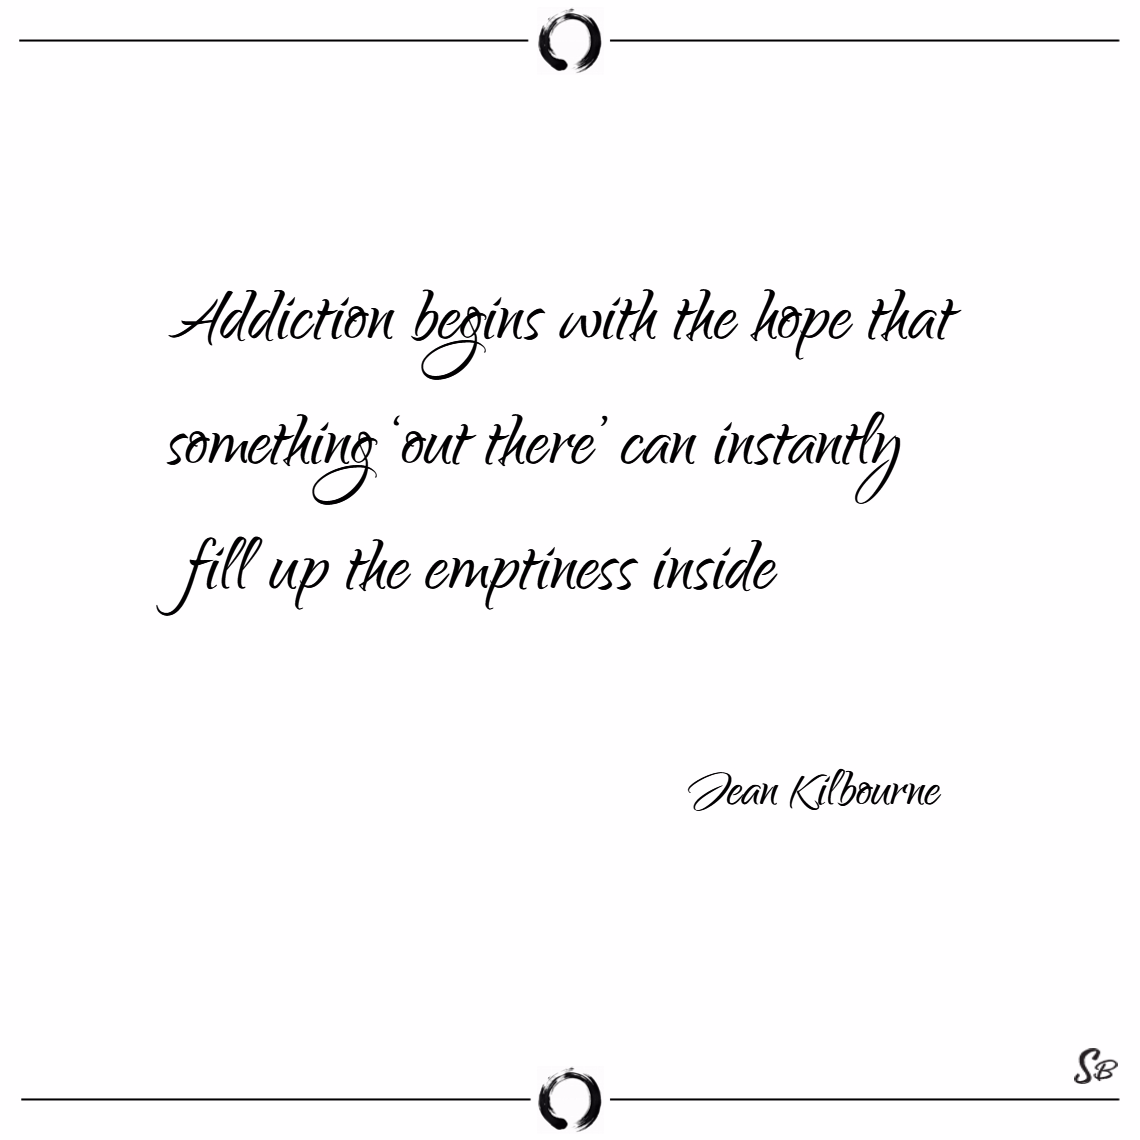 Addiction begins with the hope that something 'out there' can instantly fill up the emptiness inside. – jean kilbourne